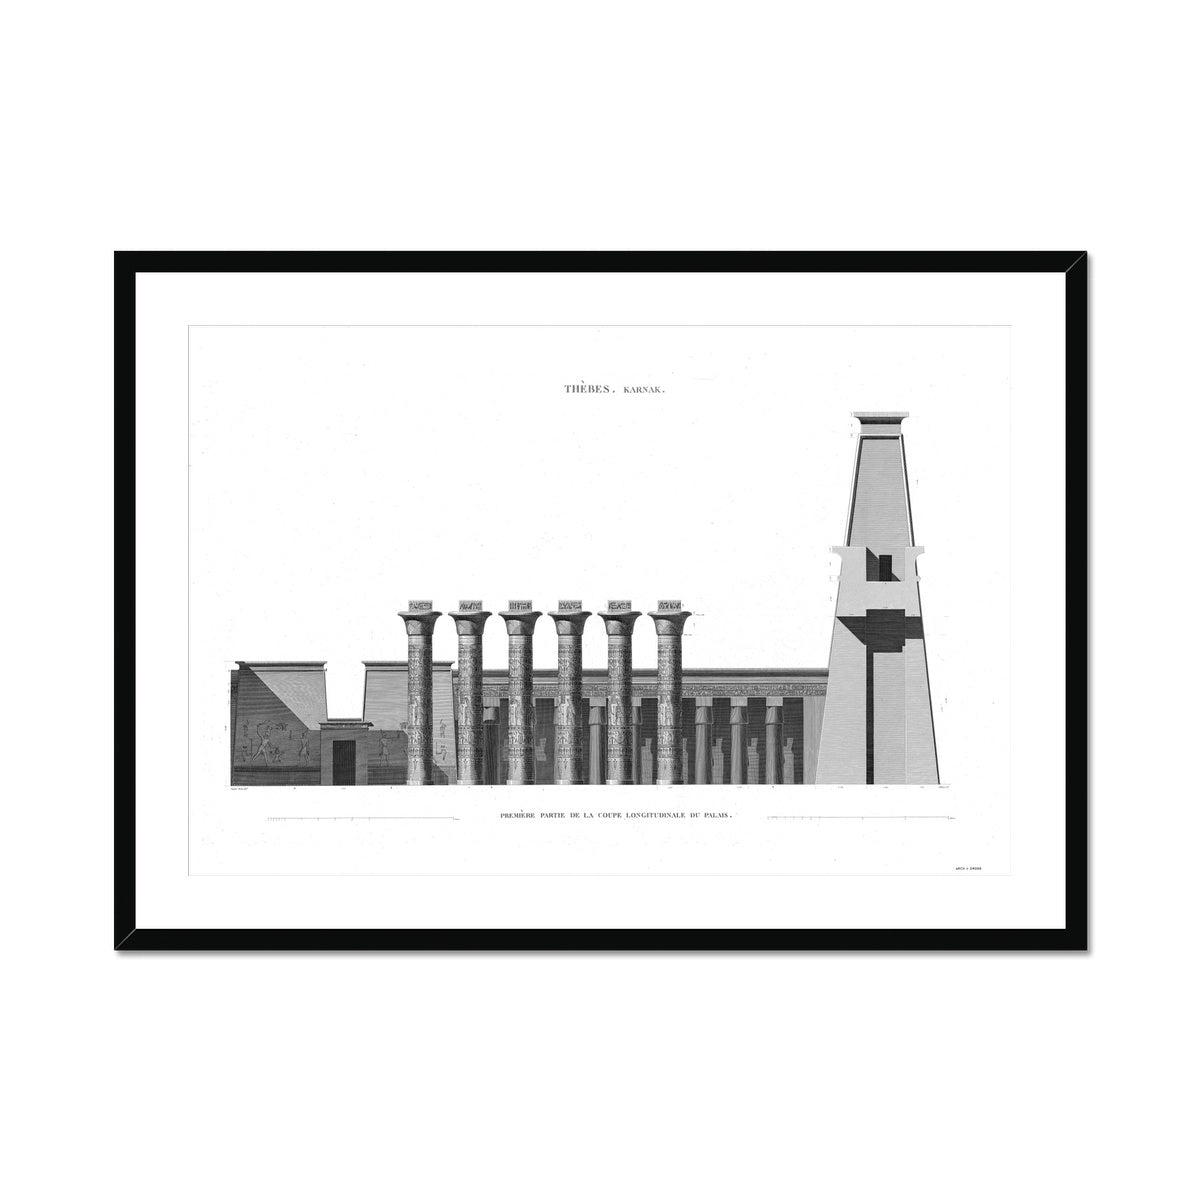 Section of the Palace - Karnak - Thebes Egypt -  Framed & Mounted Print